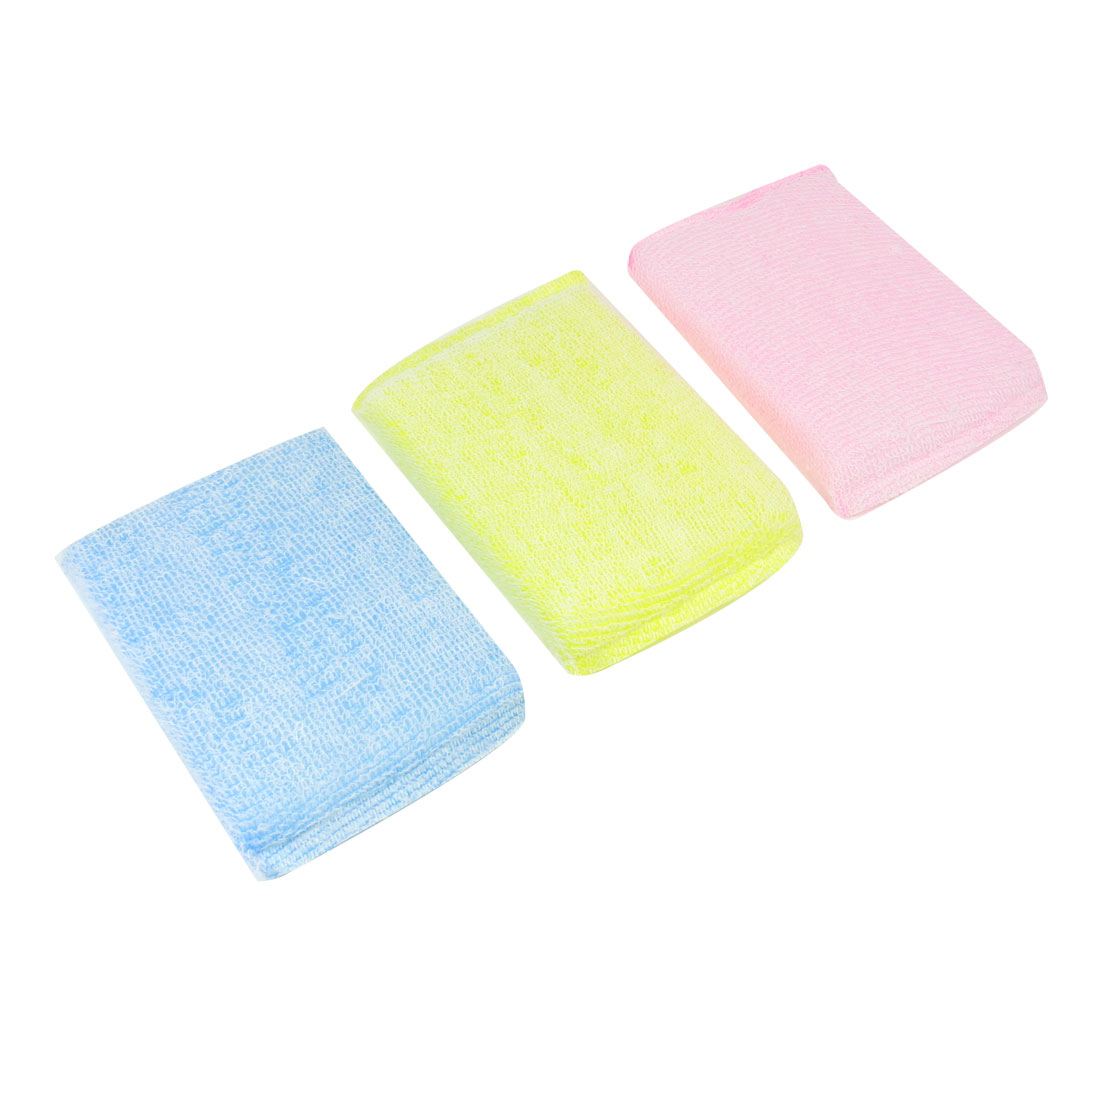 Kitchen Cotton Blends Wraped Sponge Pink Blue Yellow Dish Pad Cleaner 3 Pcs